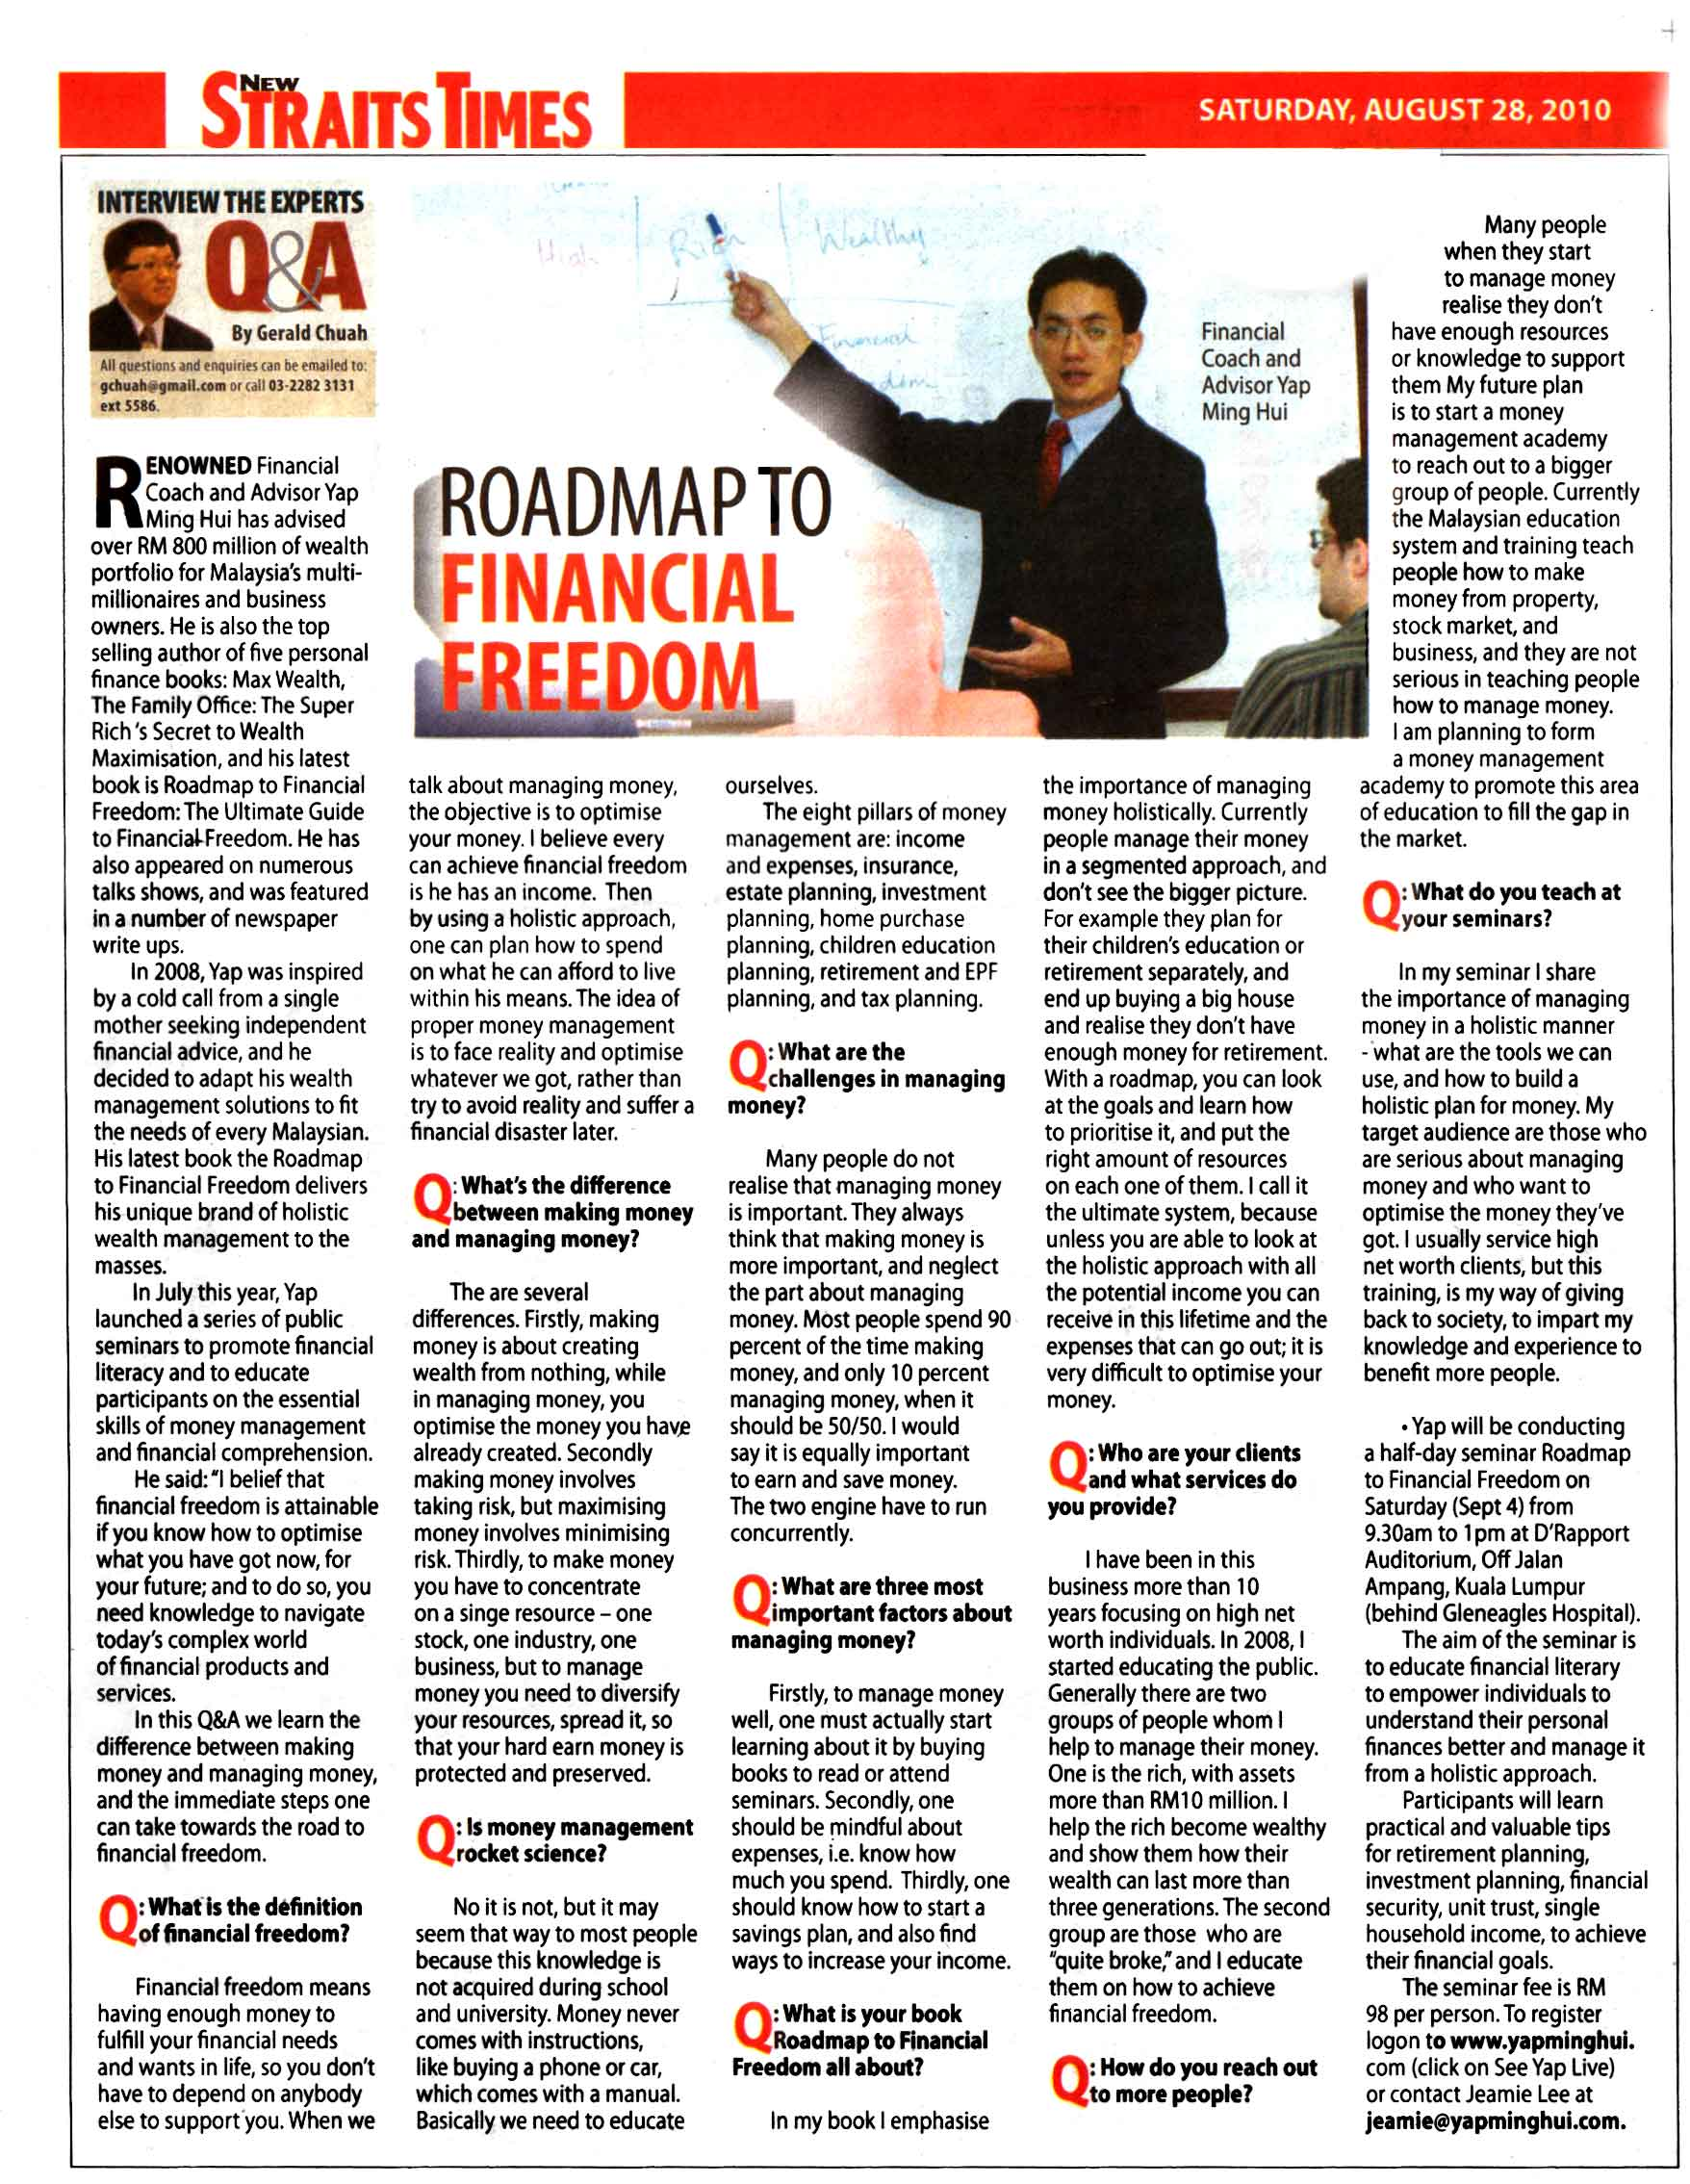 Roadmap to financial freedom (New Straits Times) - 23 Aug 2010